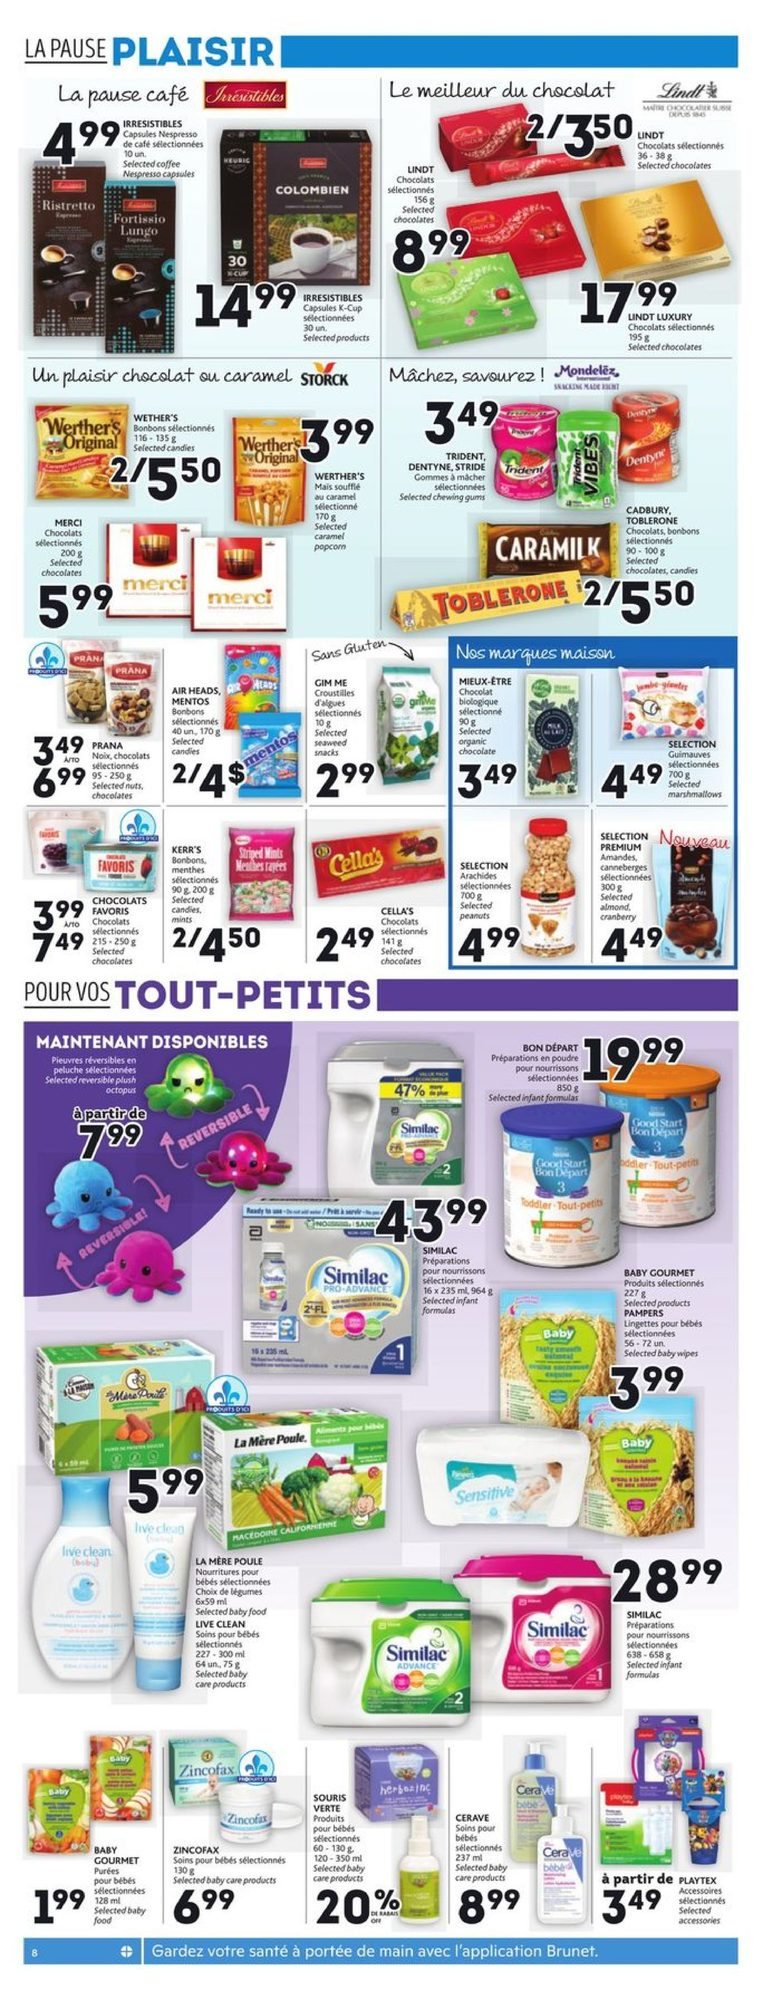 Brunet - Weekly Flyer Specials - Page 8